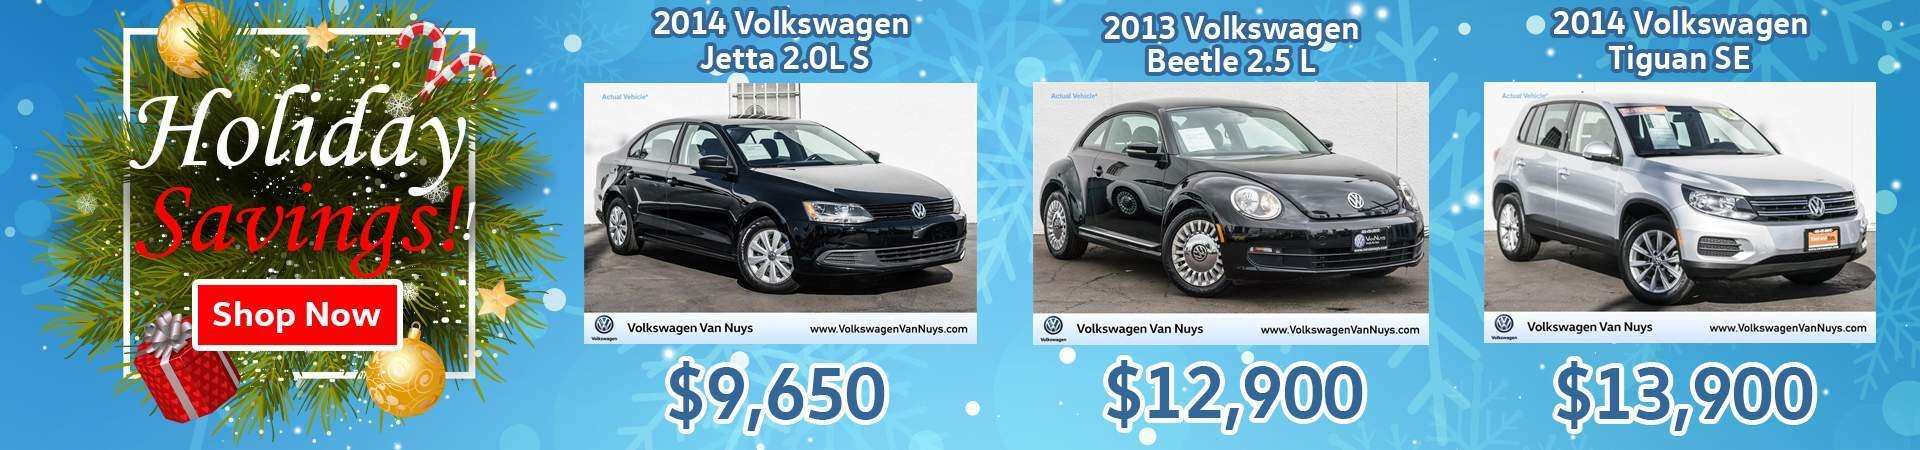 VW Holiday Savings 2